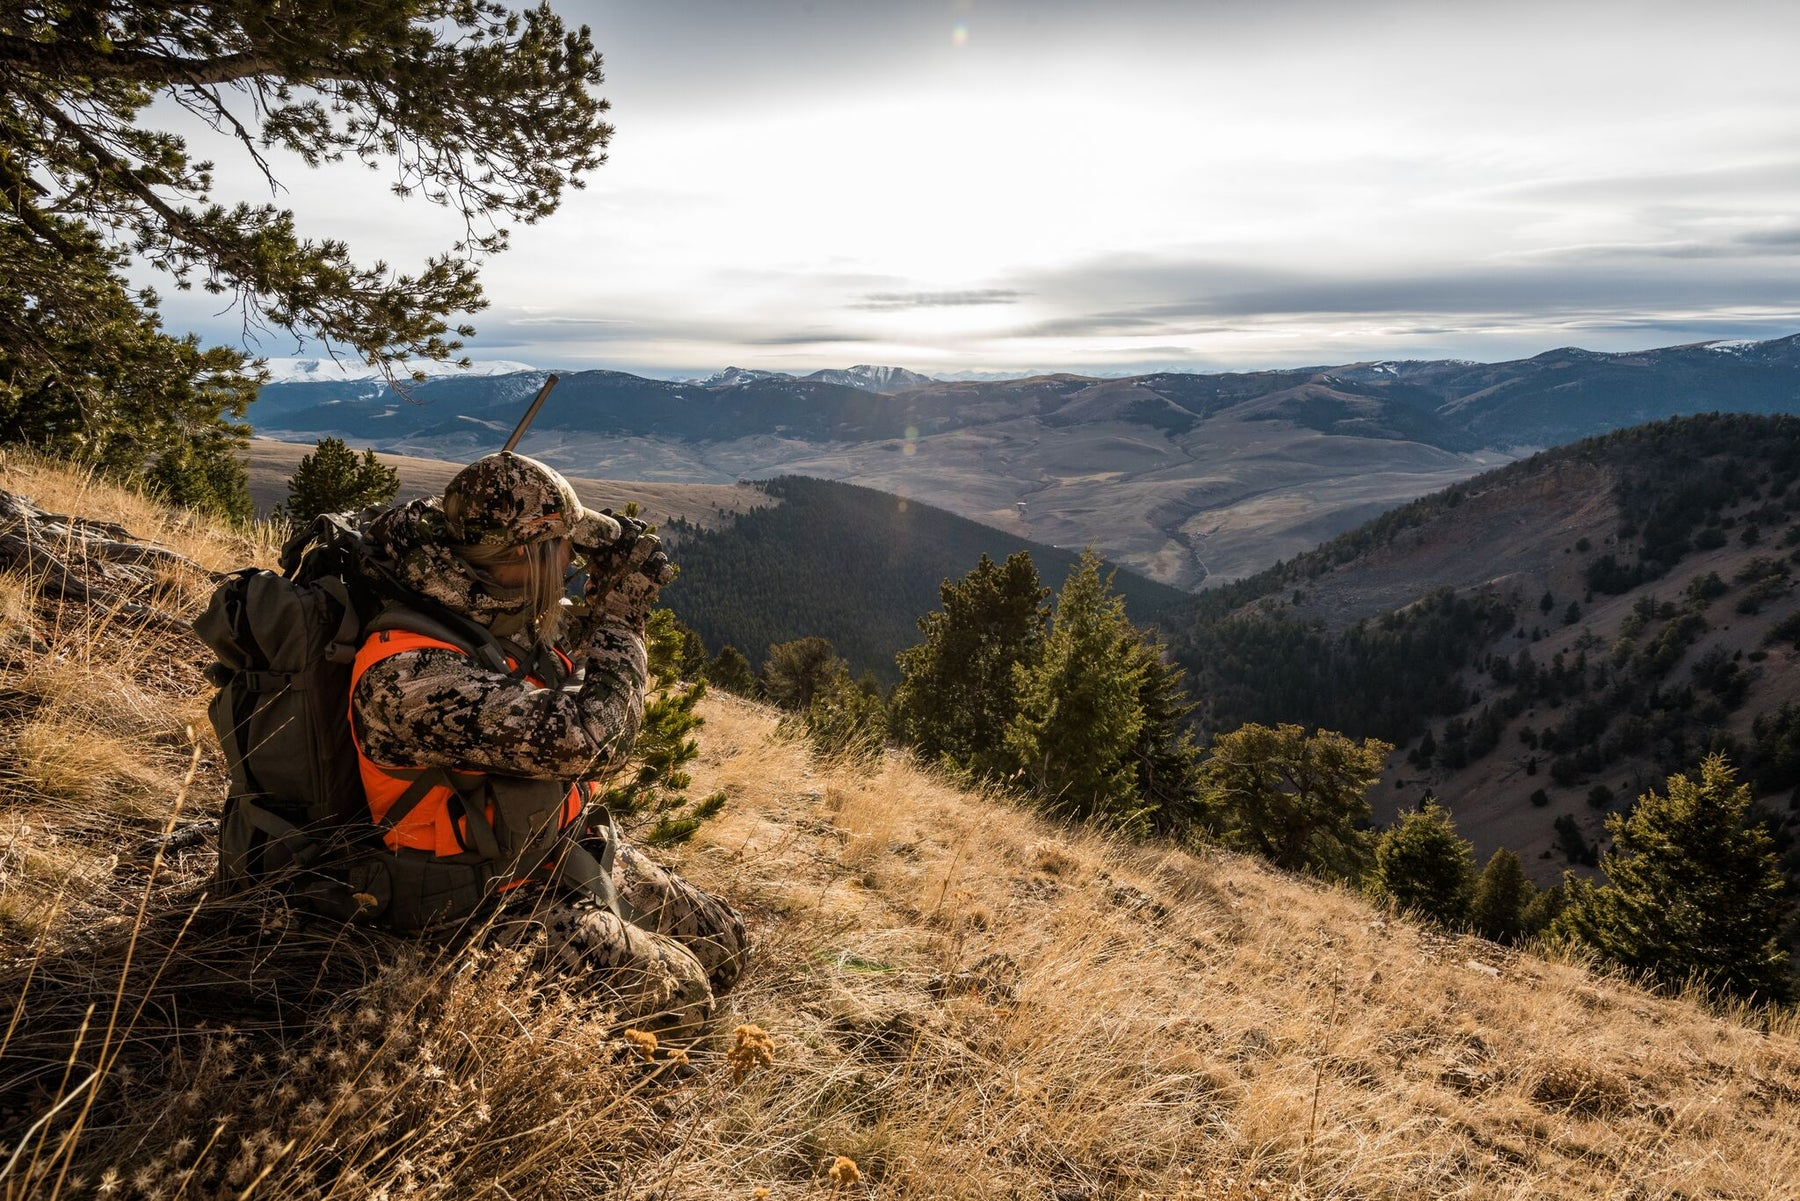 You have spotting your premier hunting and camping gear here